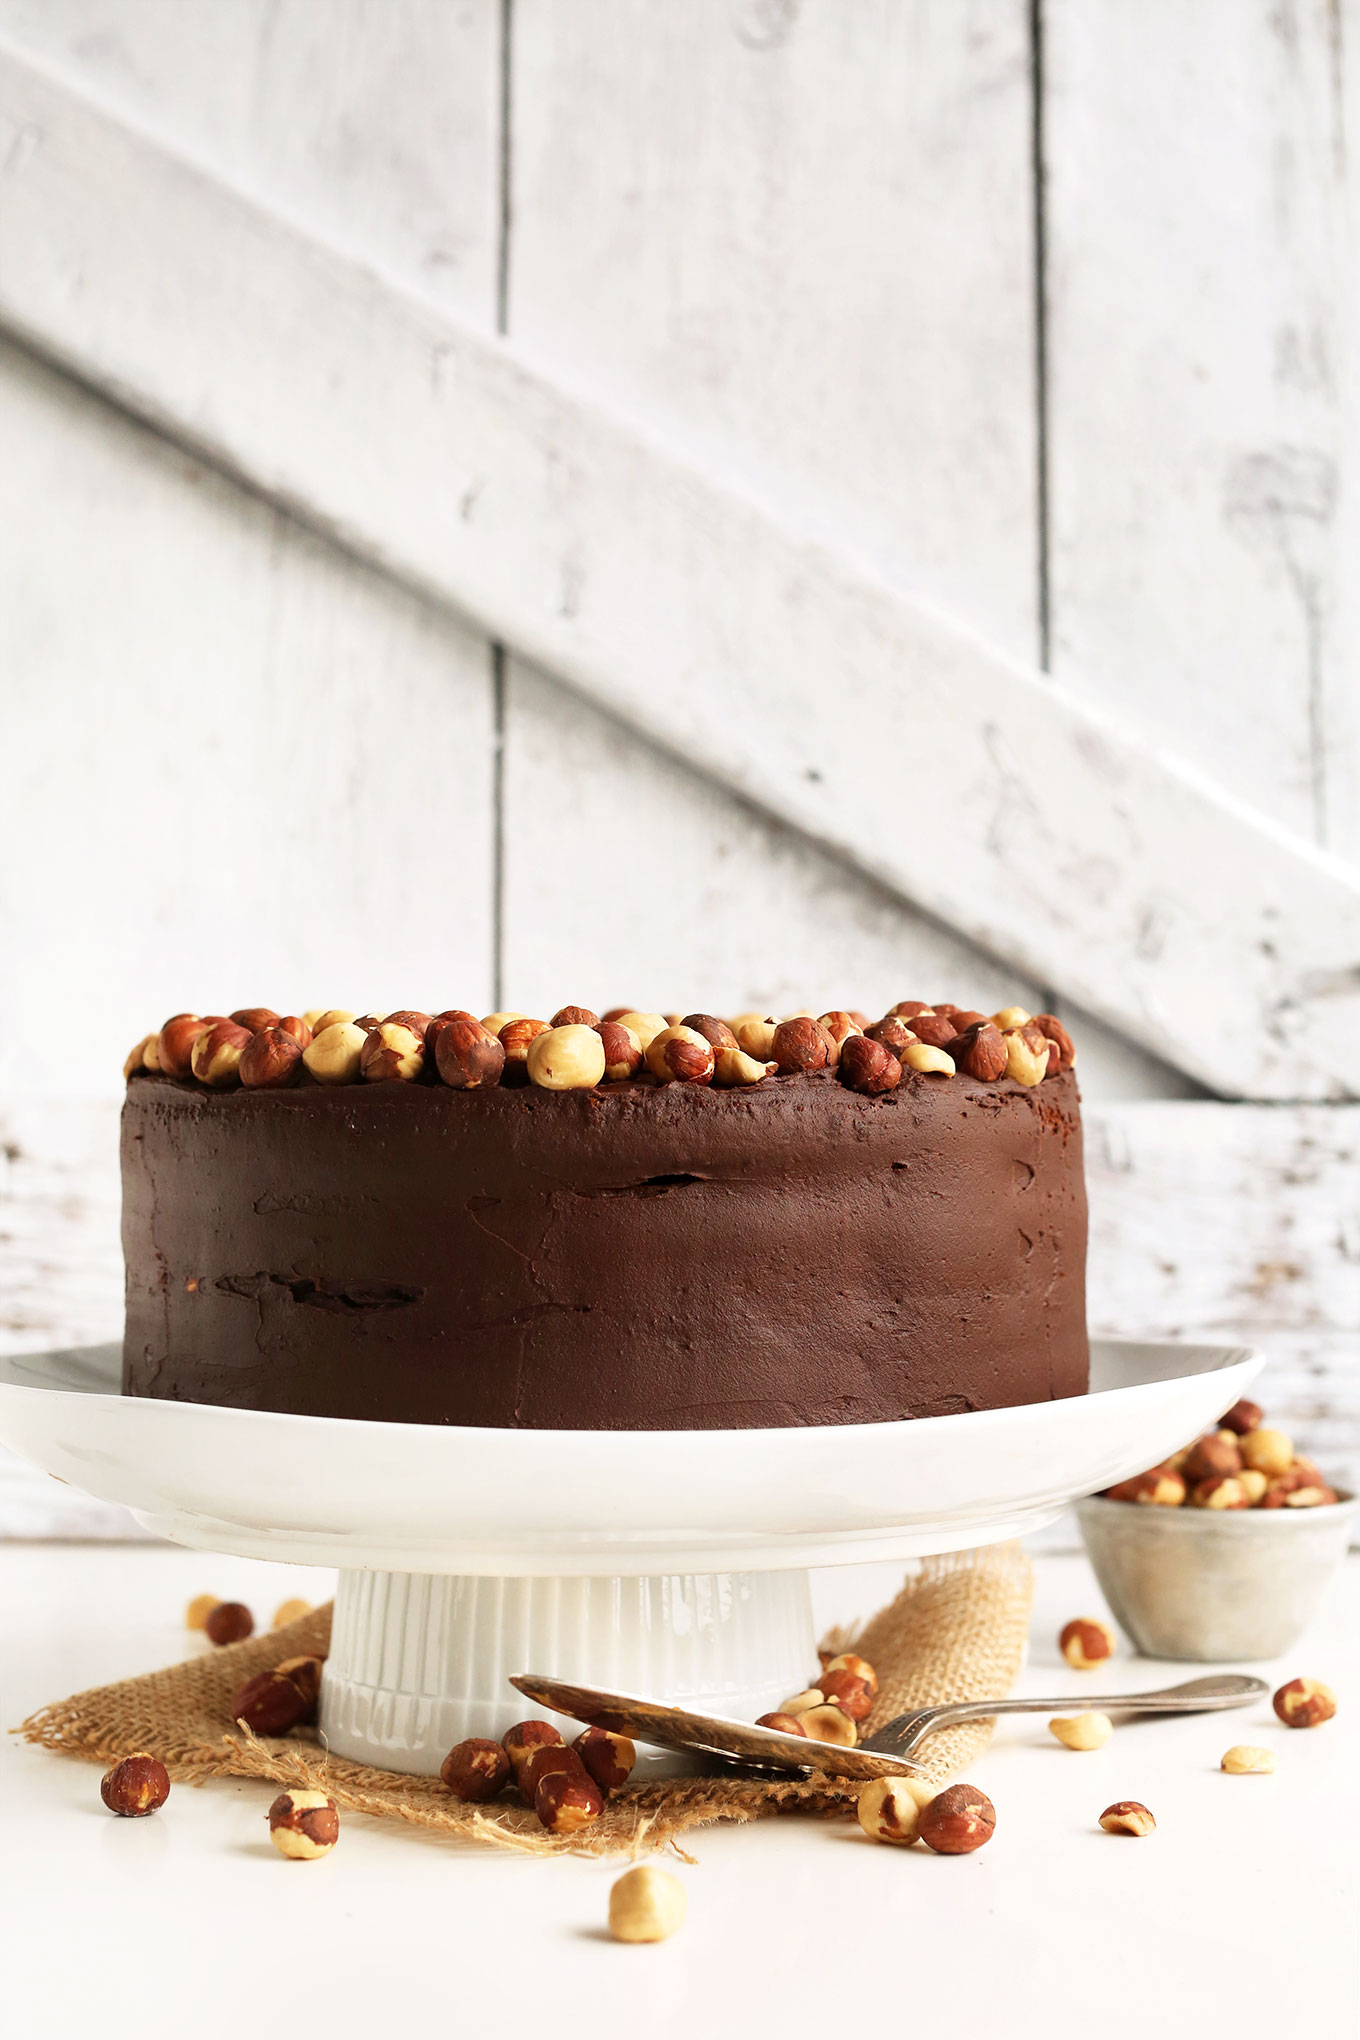 Nigella Lawson Chocolate Vegan Cake